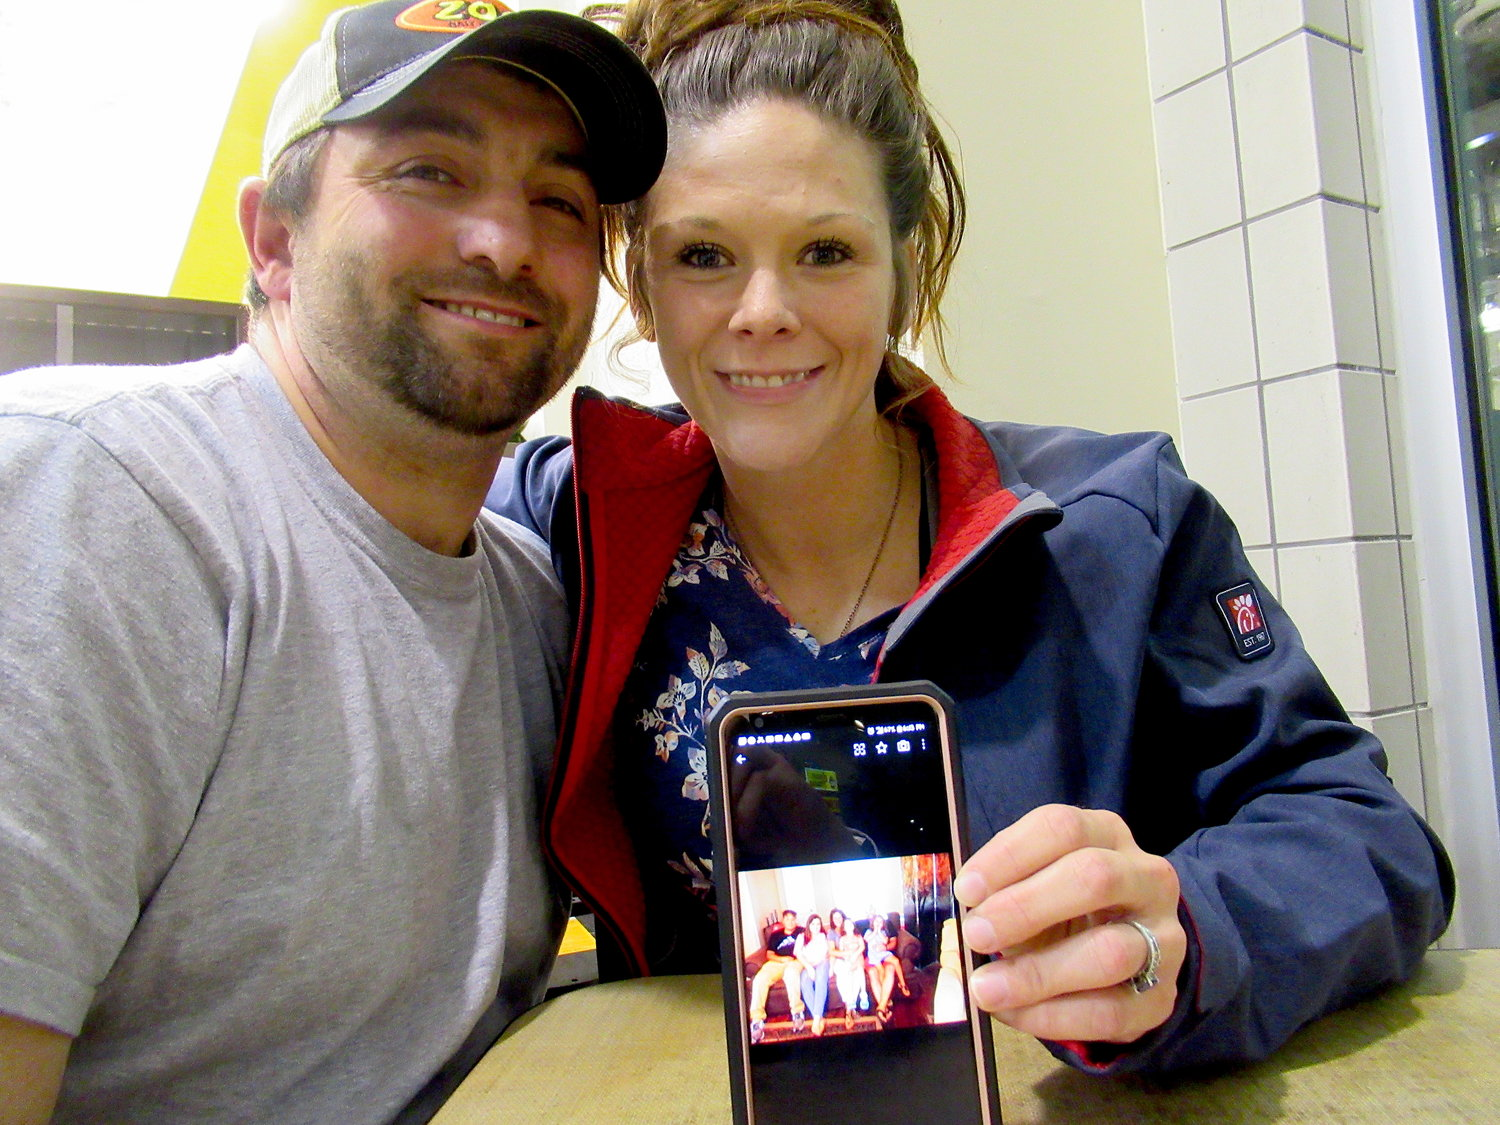 Nicholas McFall, 36, and Stephanie McFall, 30, show off a photograph of themselves with their children.